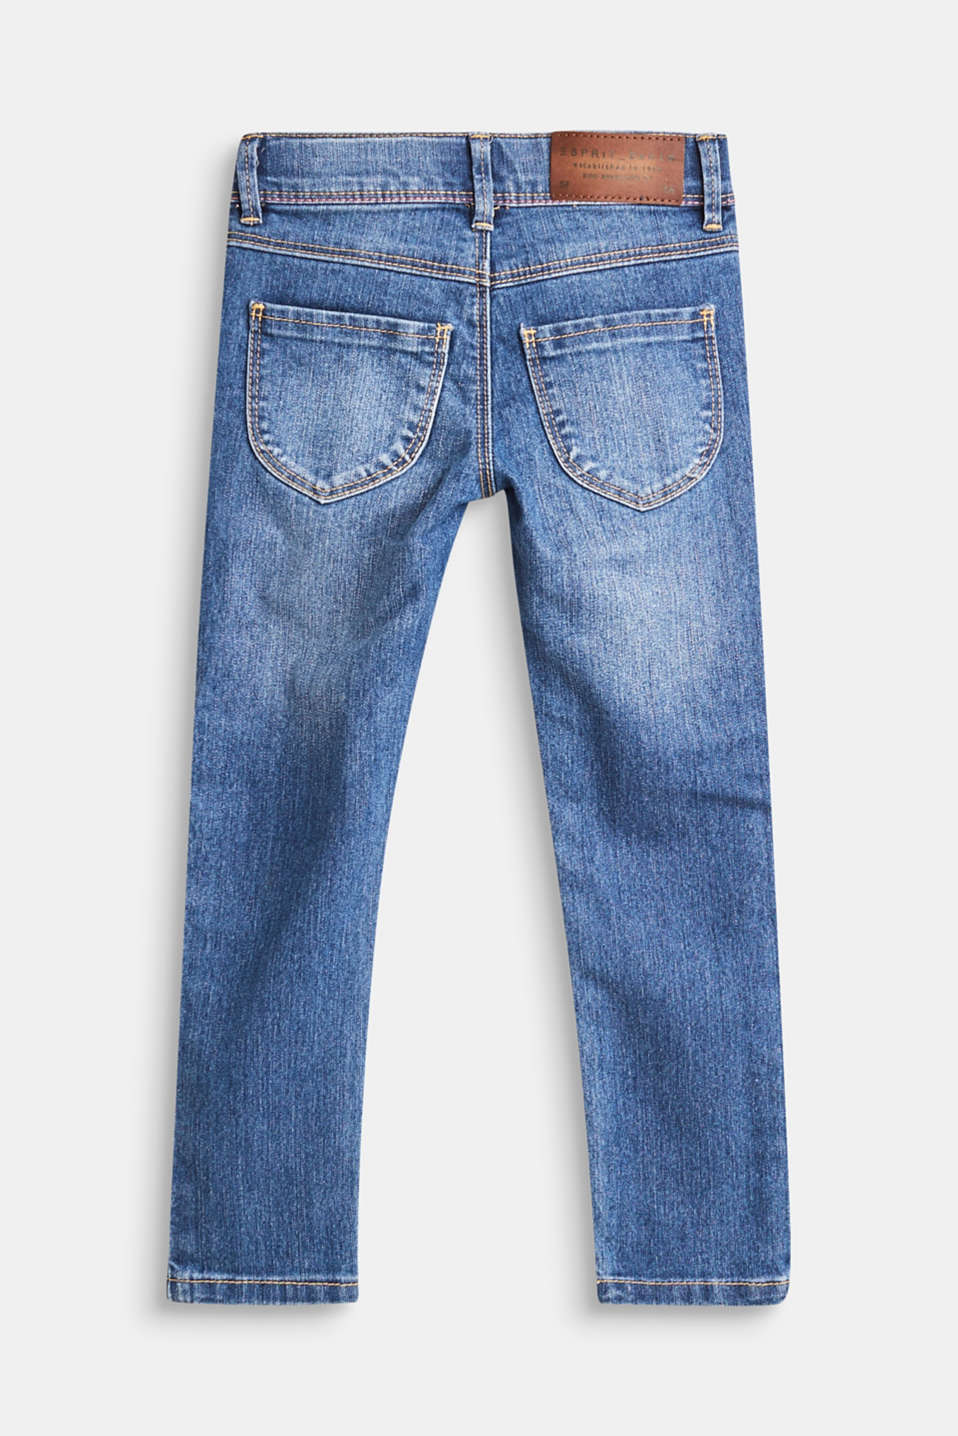 Stretch jeans with glittery pockets, adjustable waistband